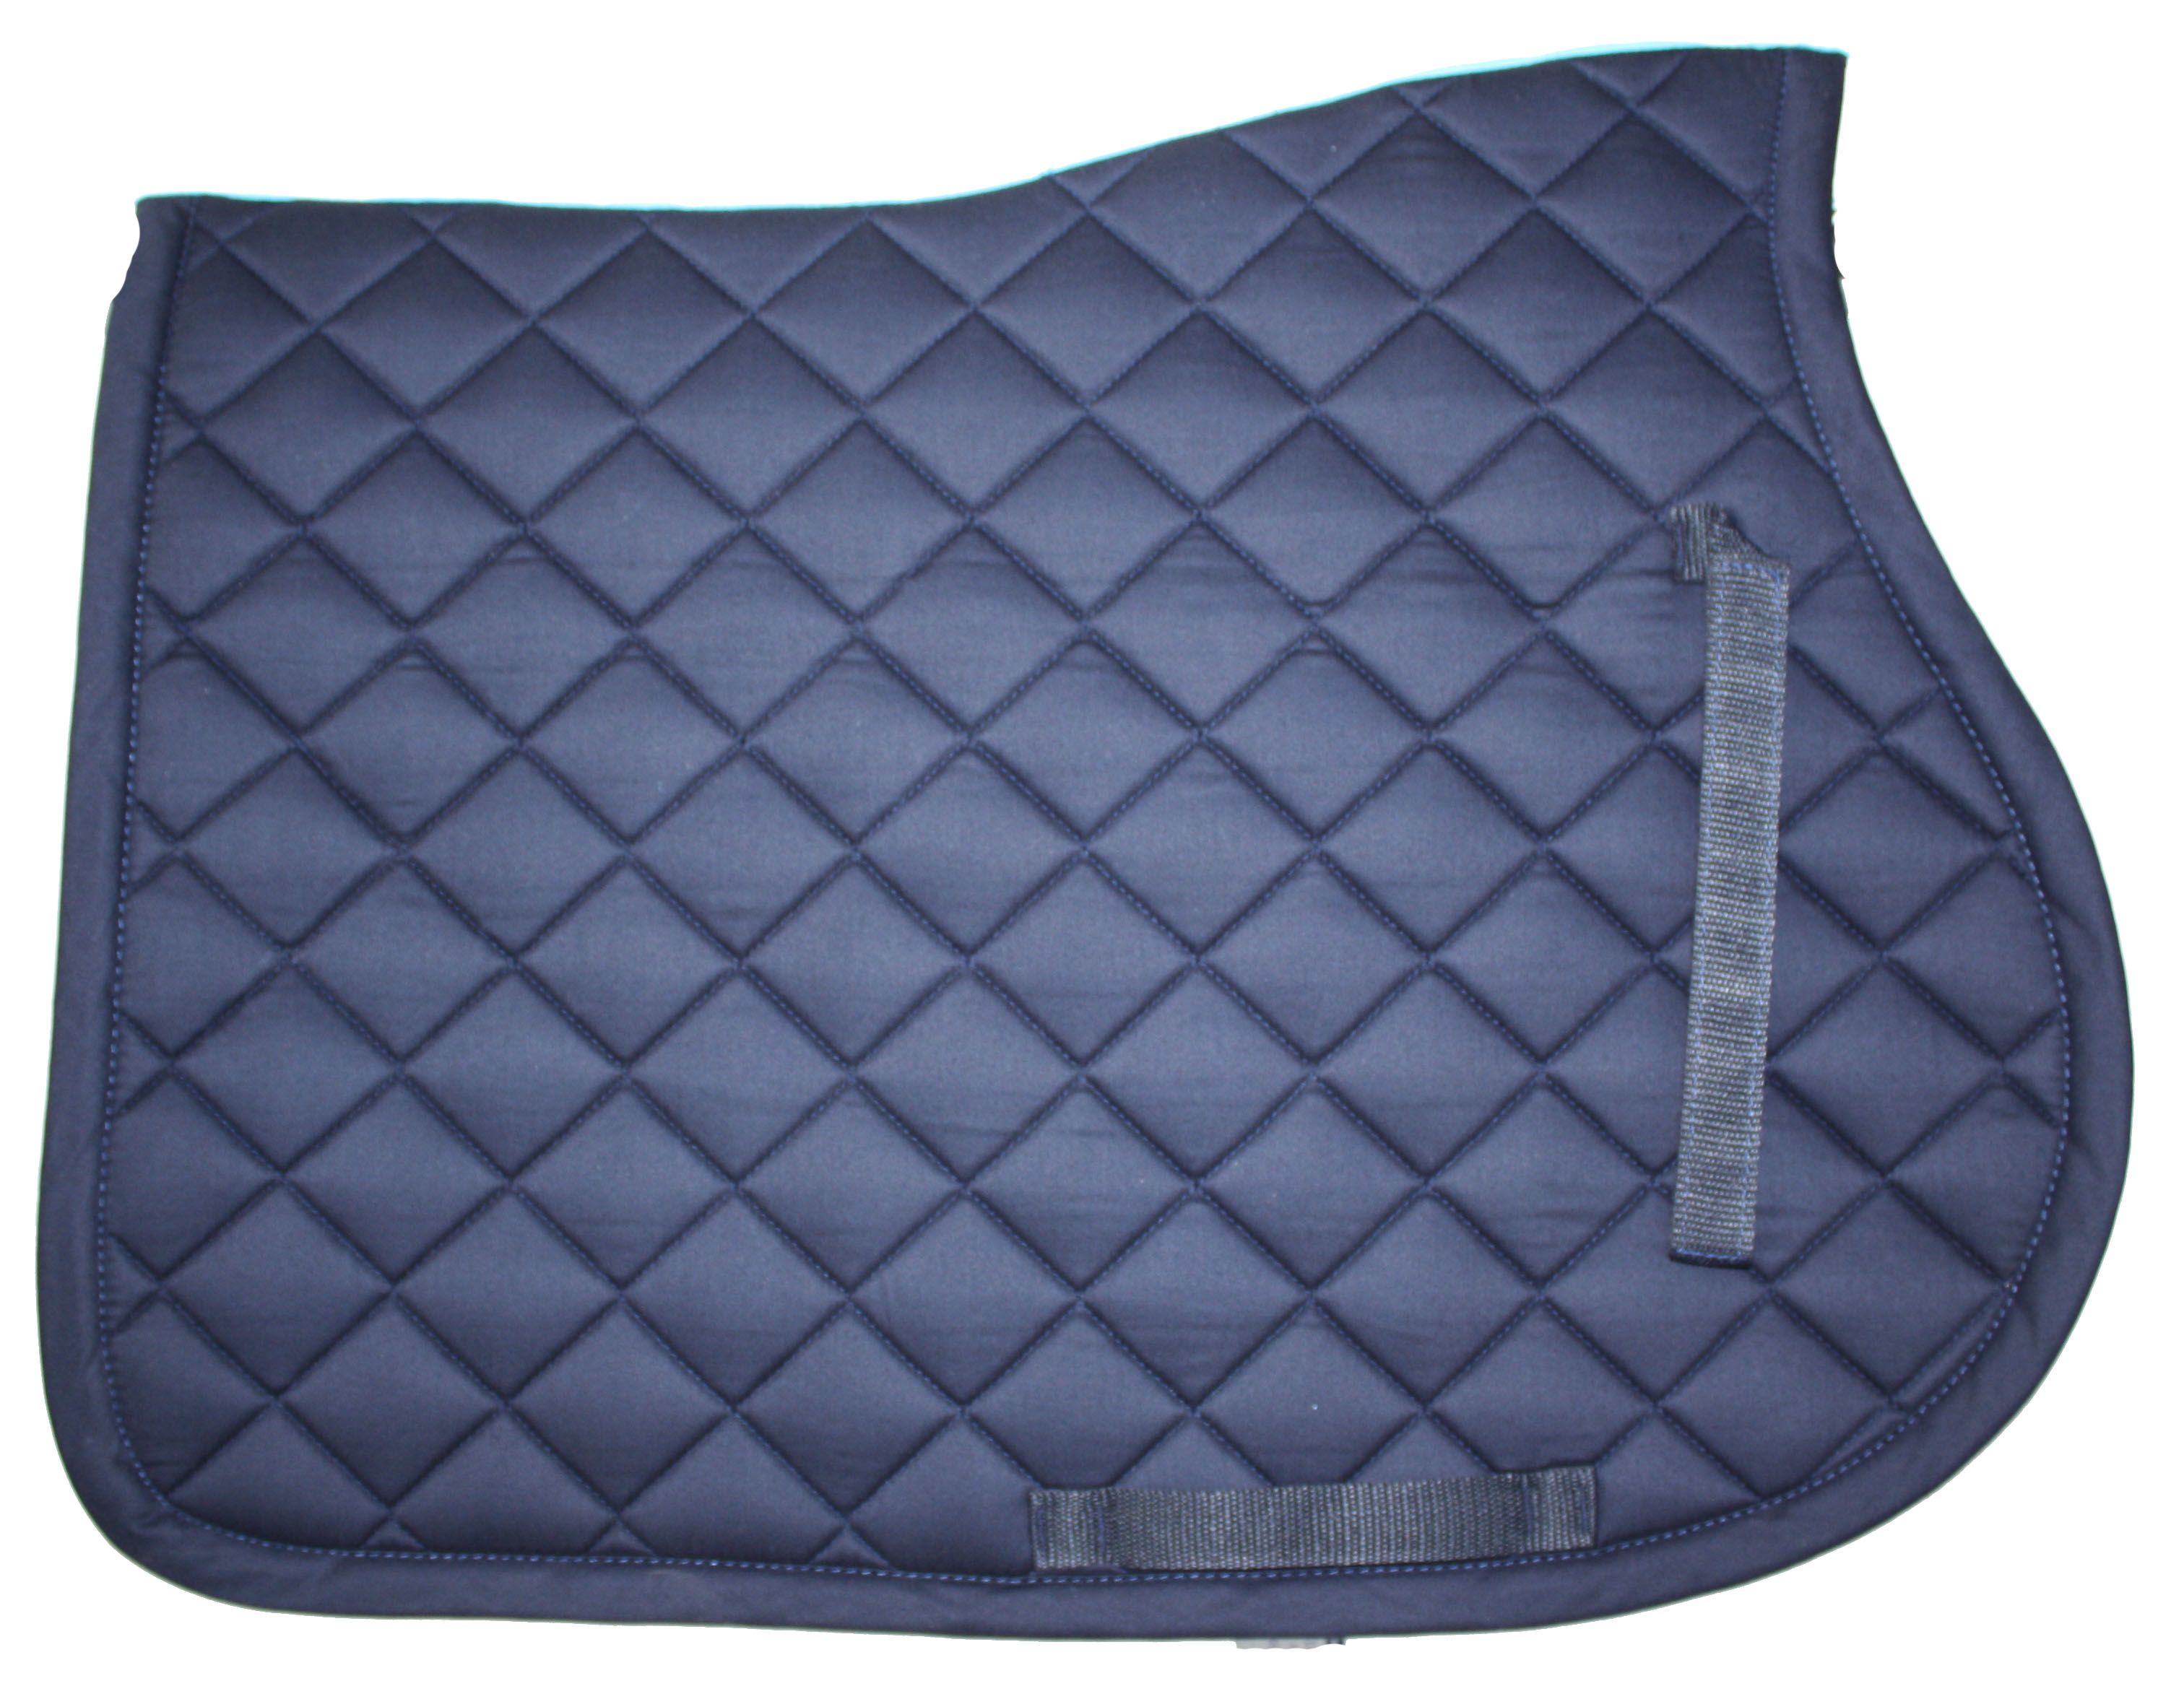 Lami-Cell All Purpose Saddle Pad